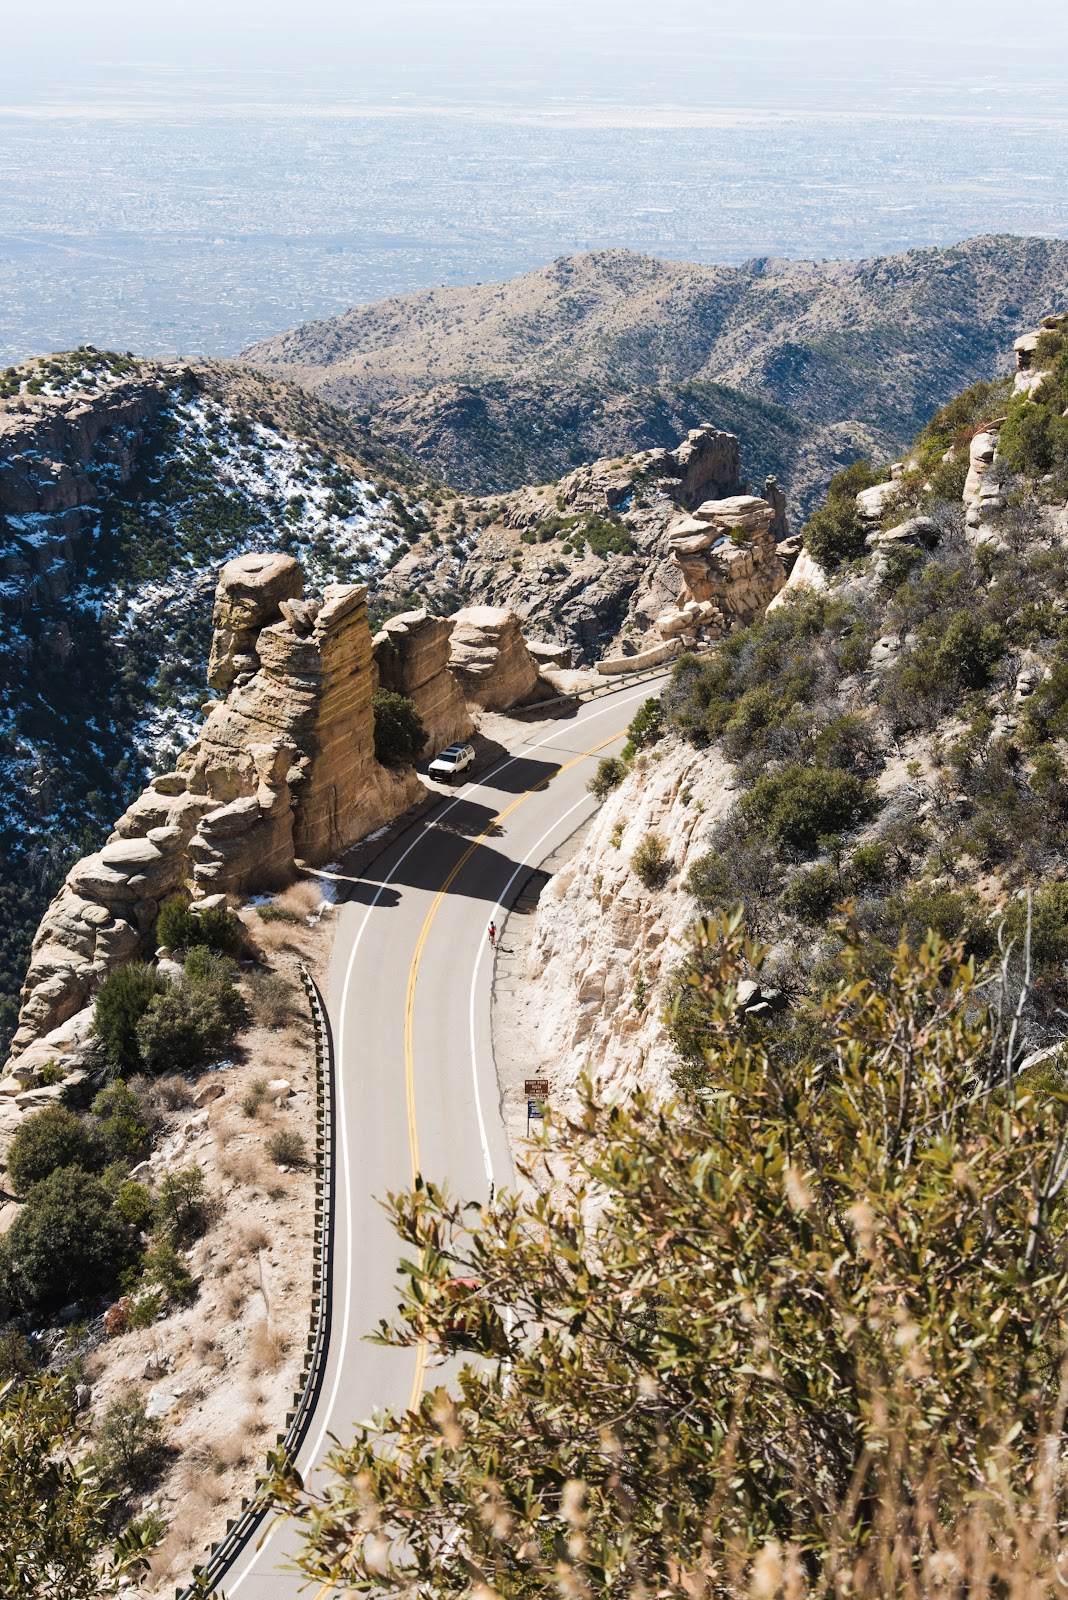 Bicycle climb - Top US Bike Climbs - Mt Lemmon - Hoodoos and cyclist, road, mountains, plains